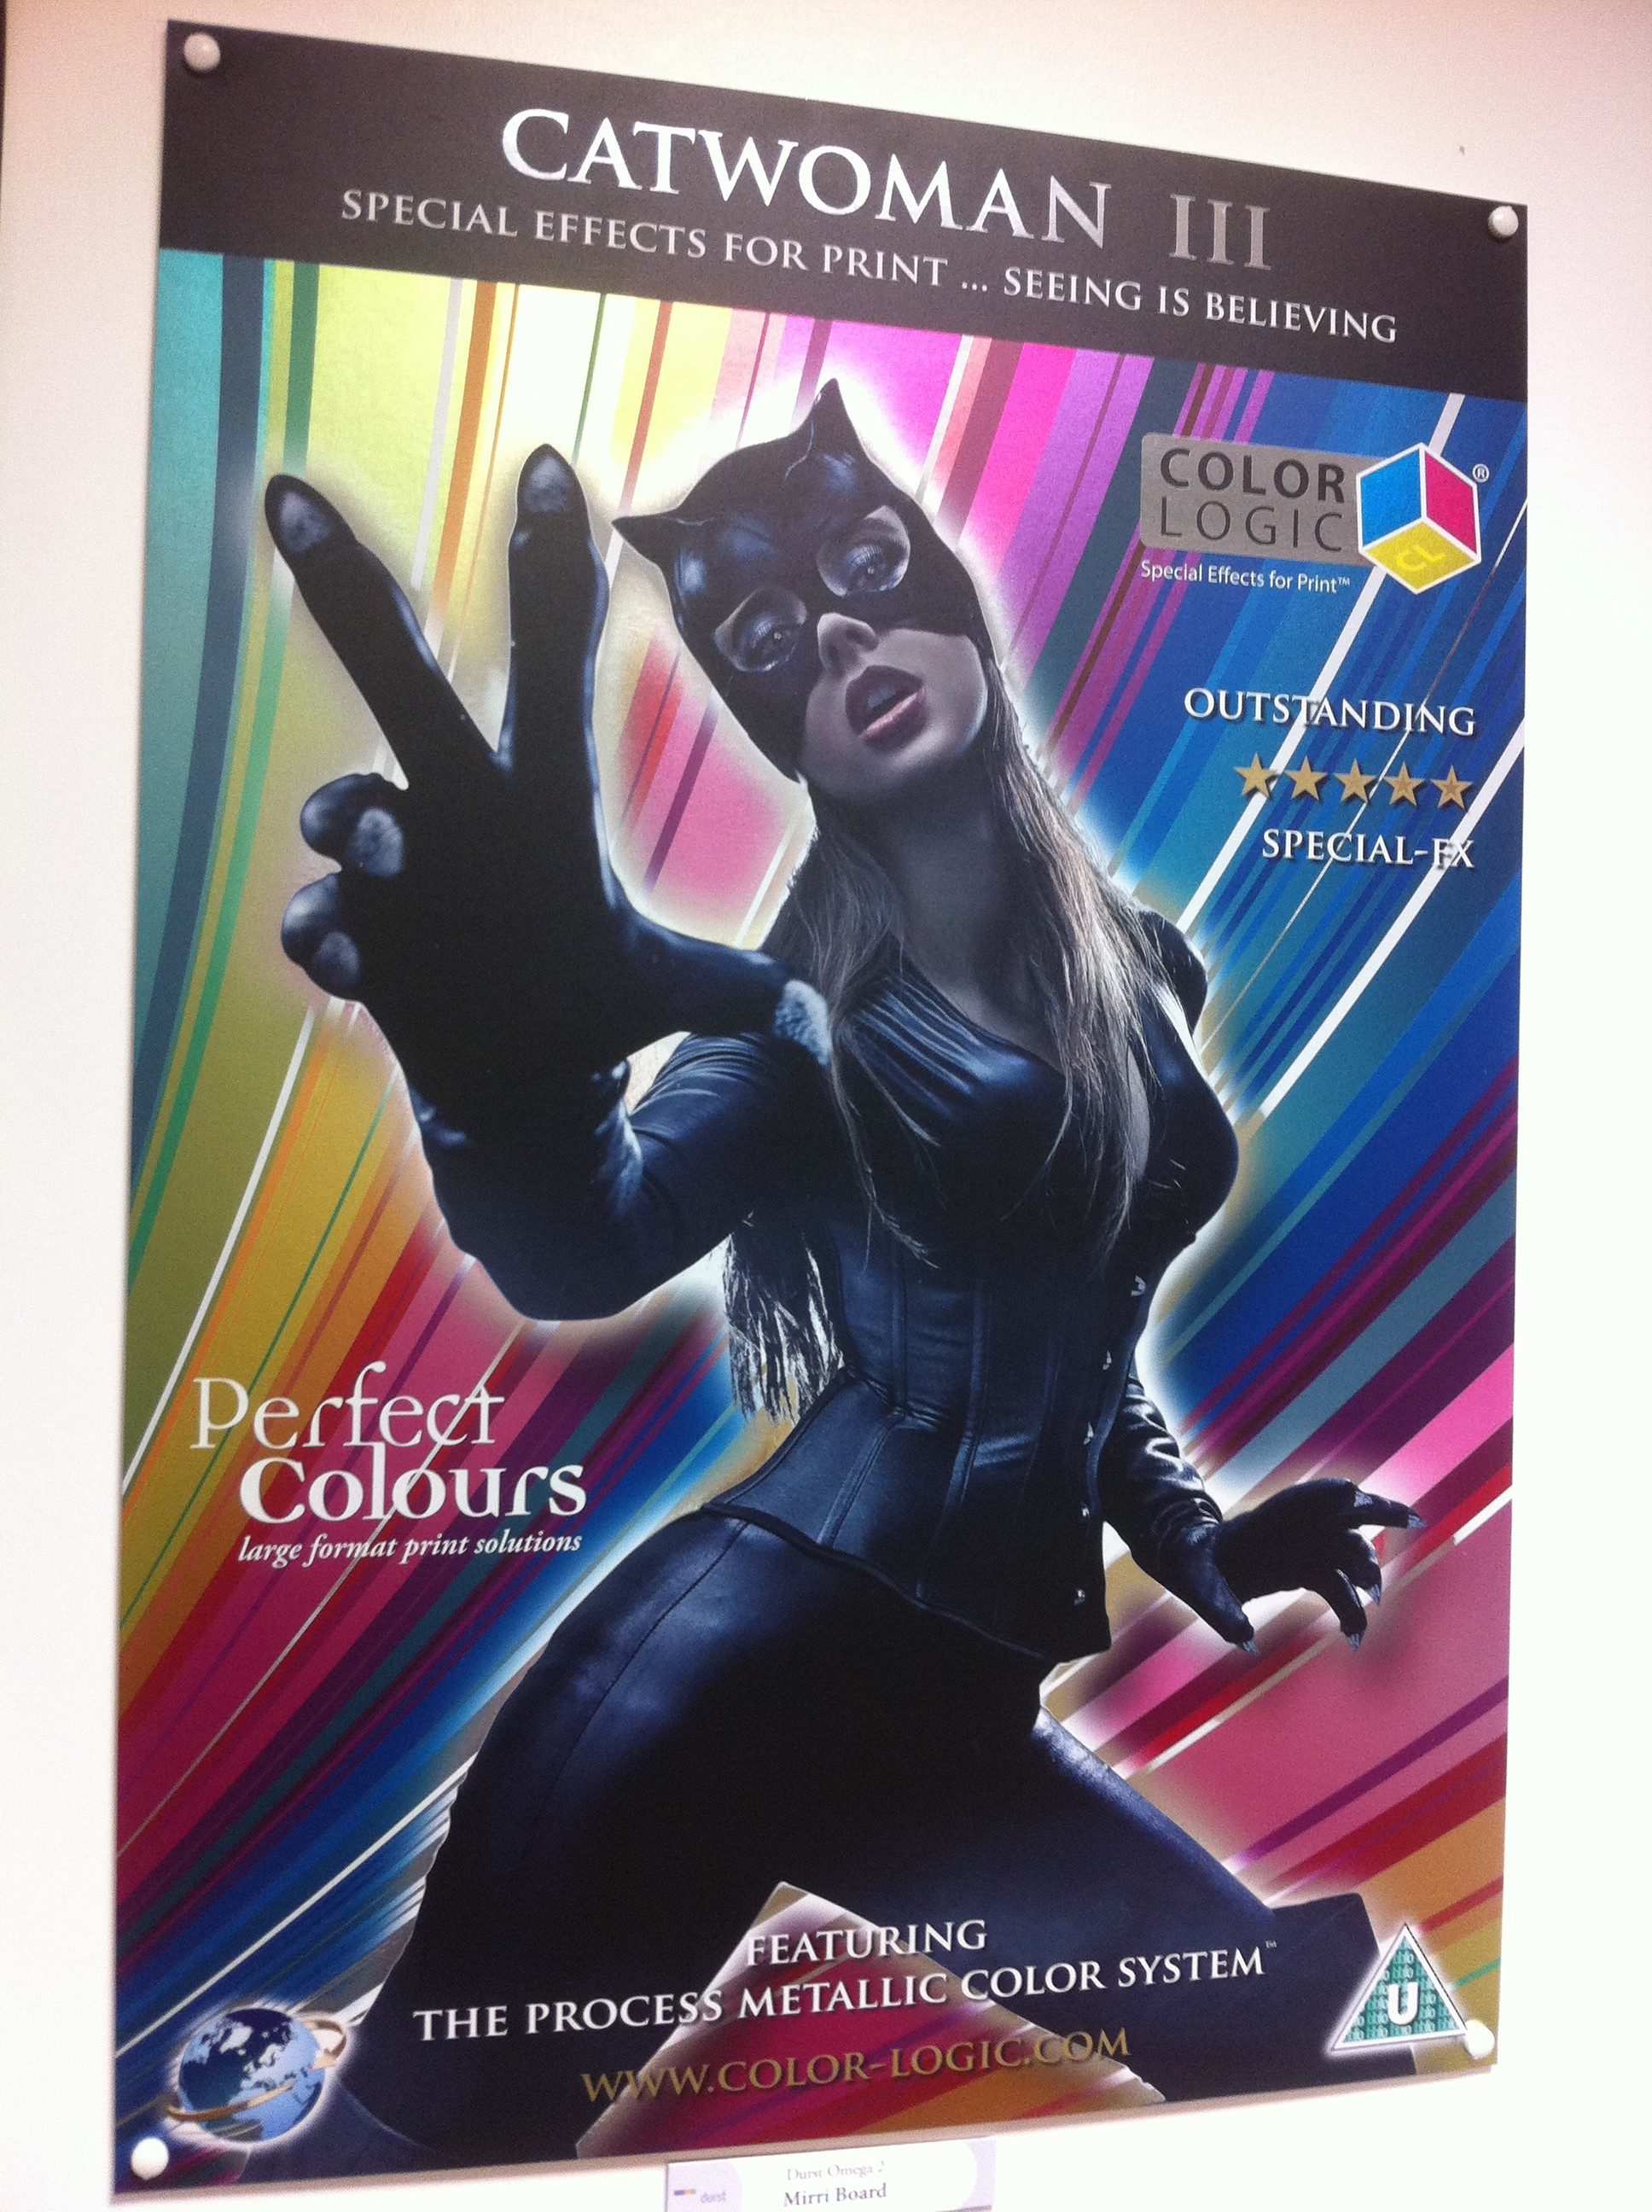 Color Logic Metallic Print on Durst Omega 2